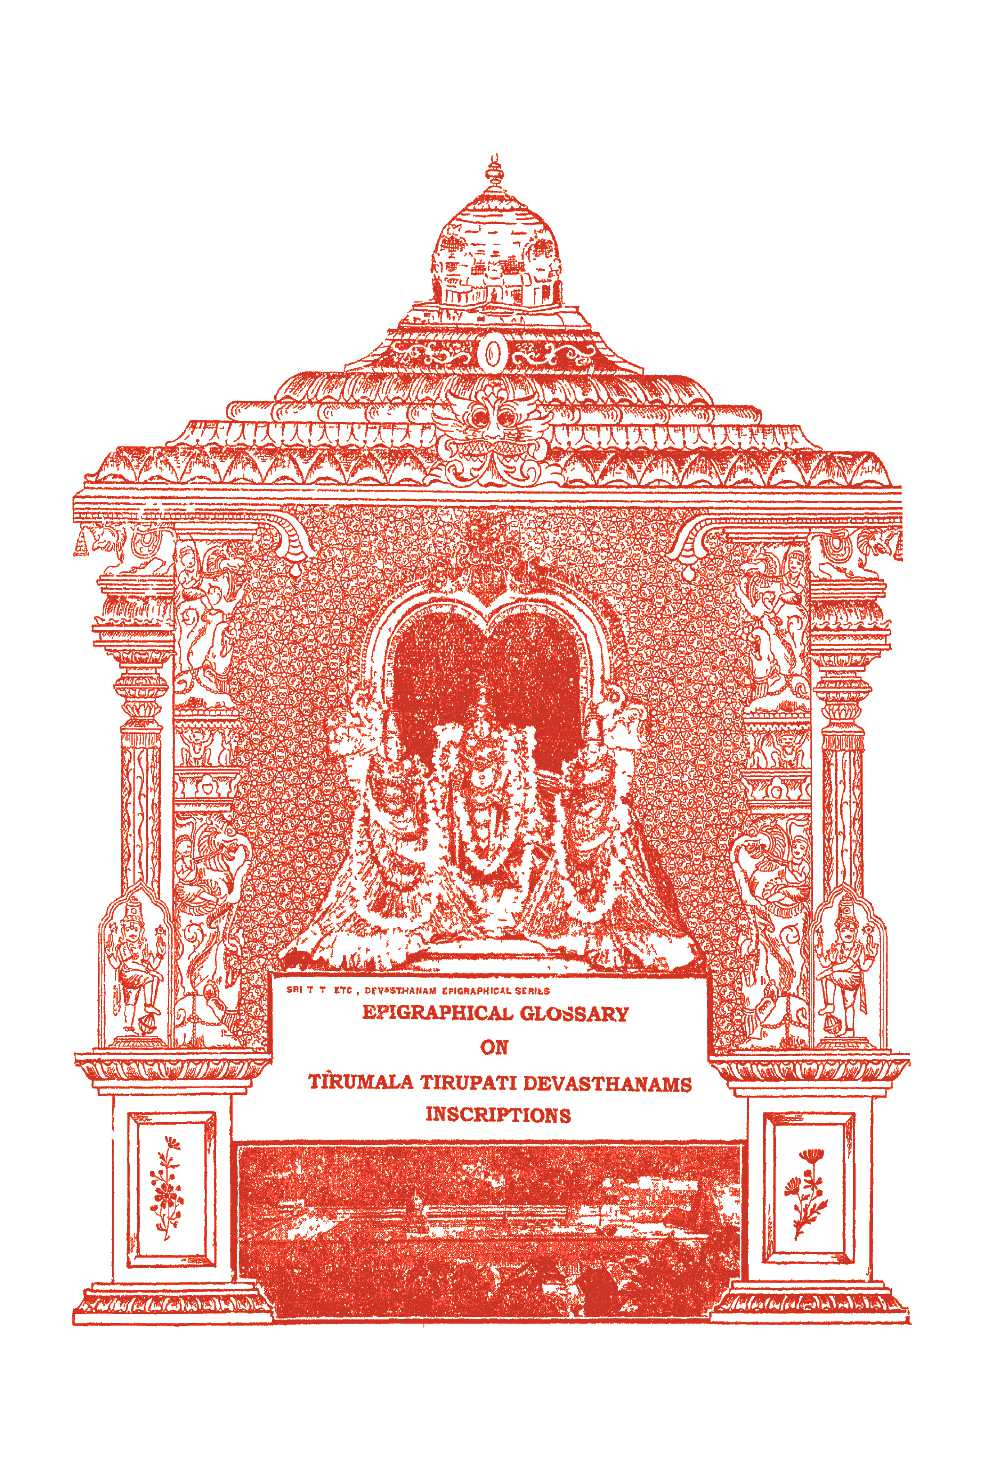 Epigraphical Glossary On Tirumala Tirupati Devasthanams Inscriptions